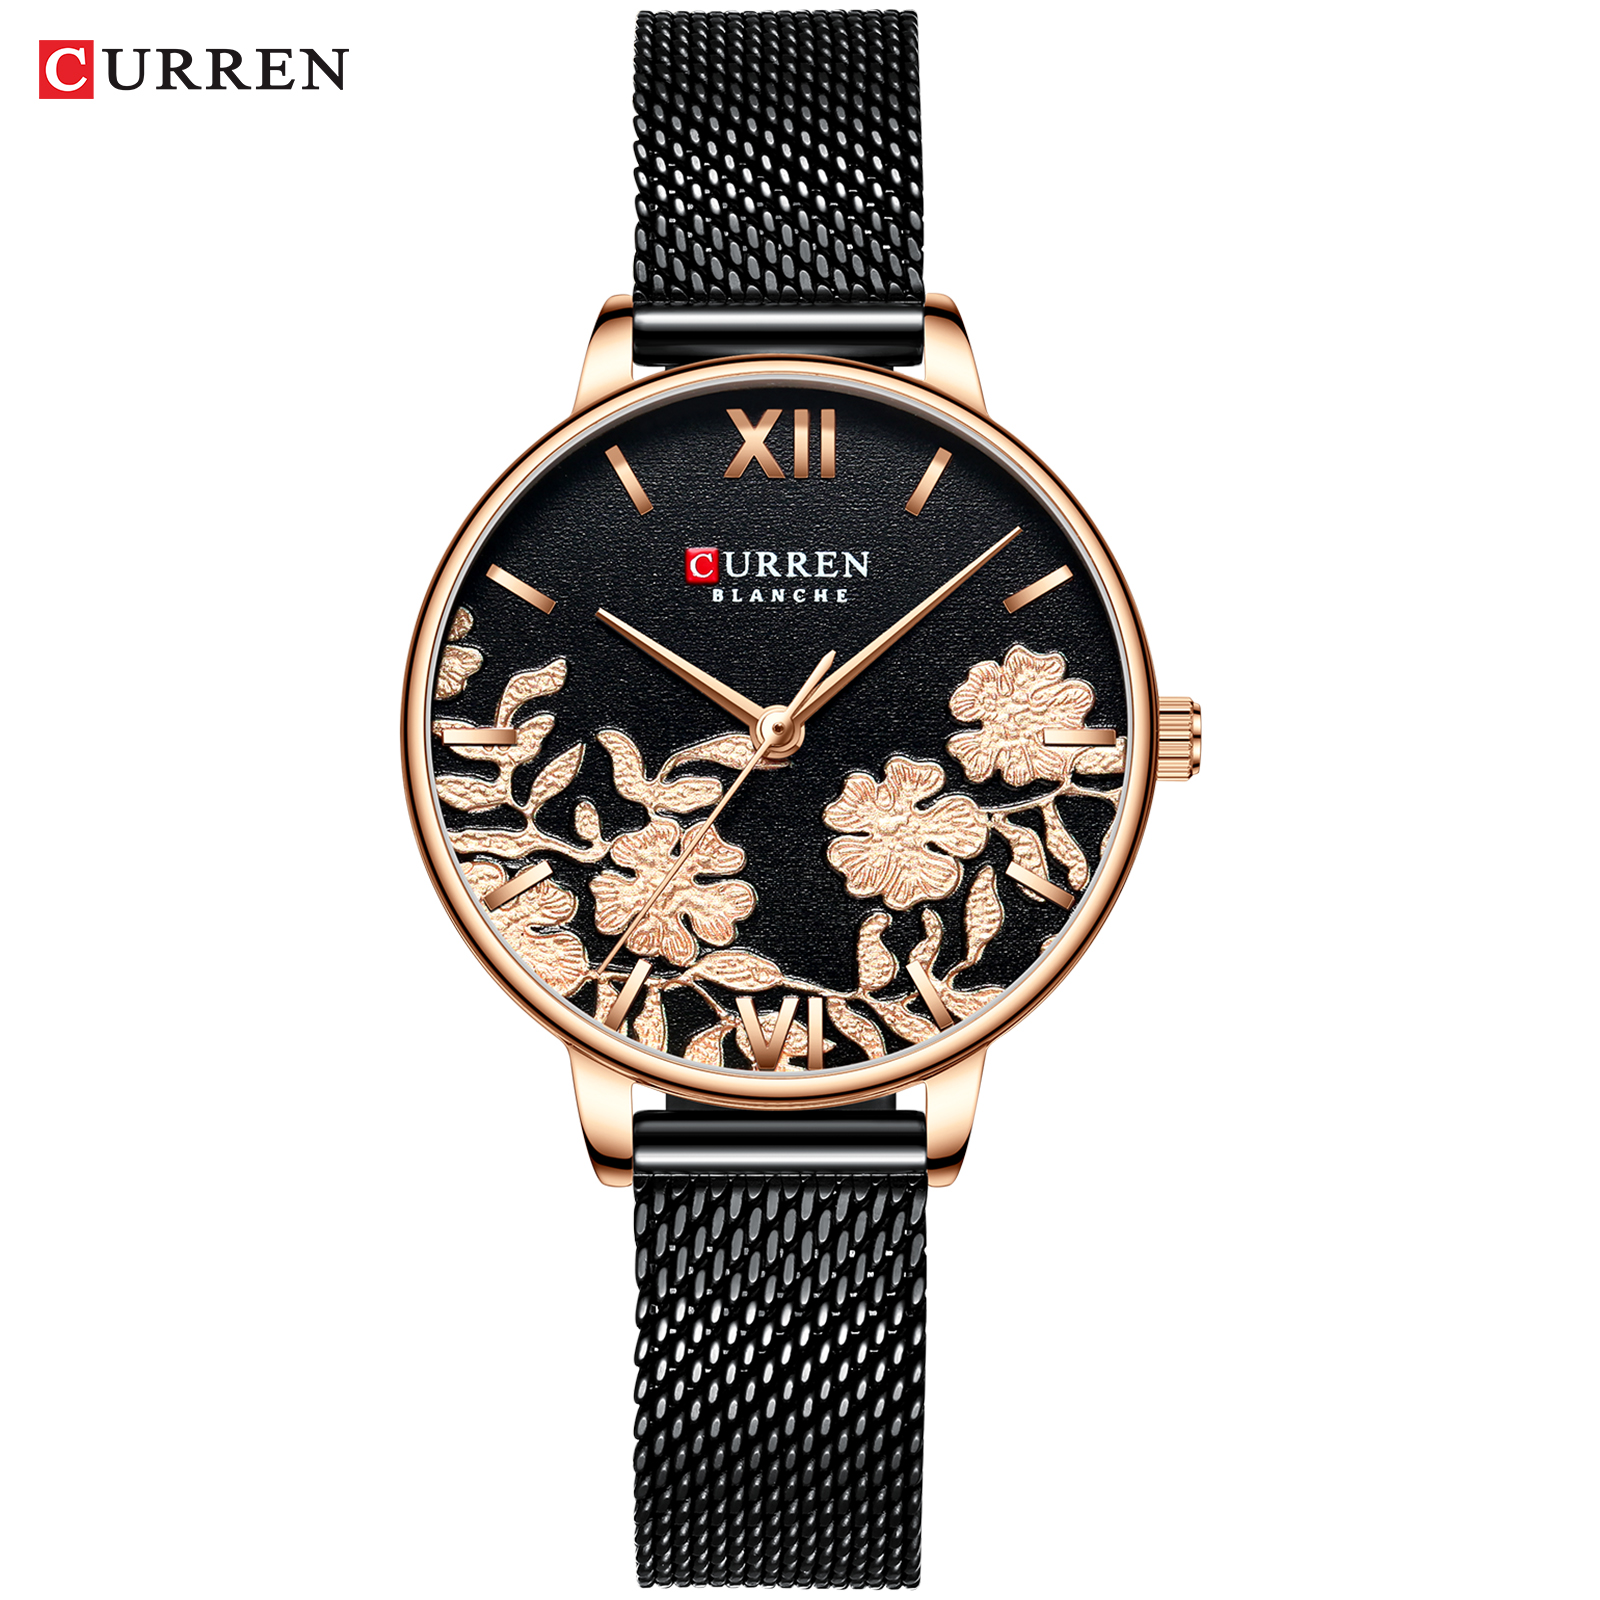 CURREN Women Watches Black Fashion Classy Quartz Stainless Steel And Leather Strap Watch Ladies Relogios Feminino Flower Clock